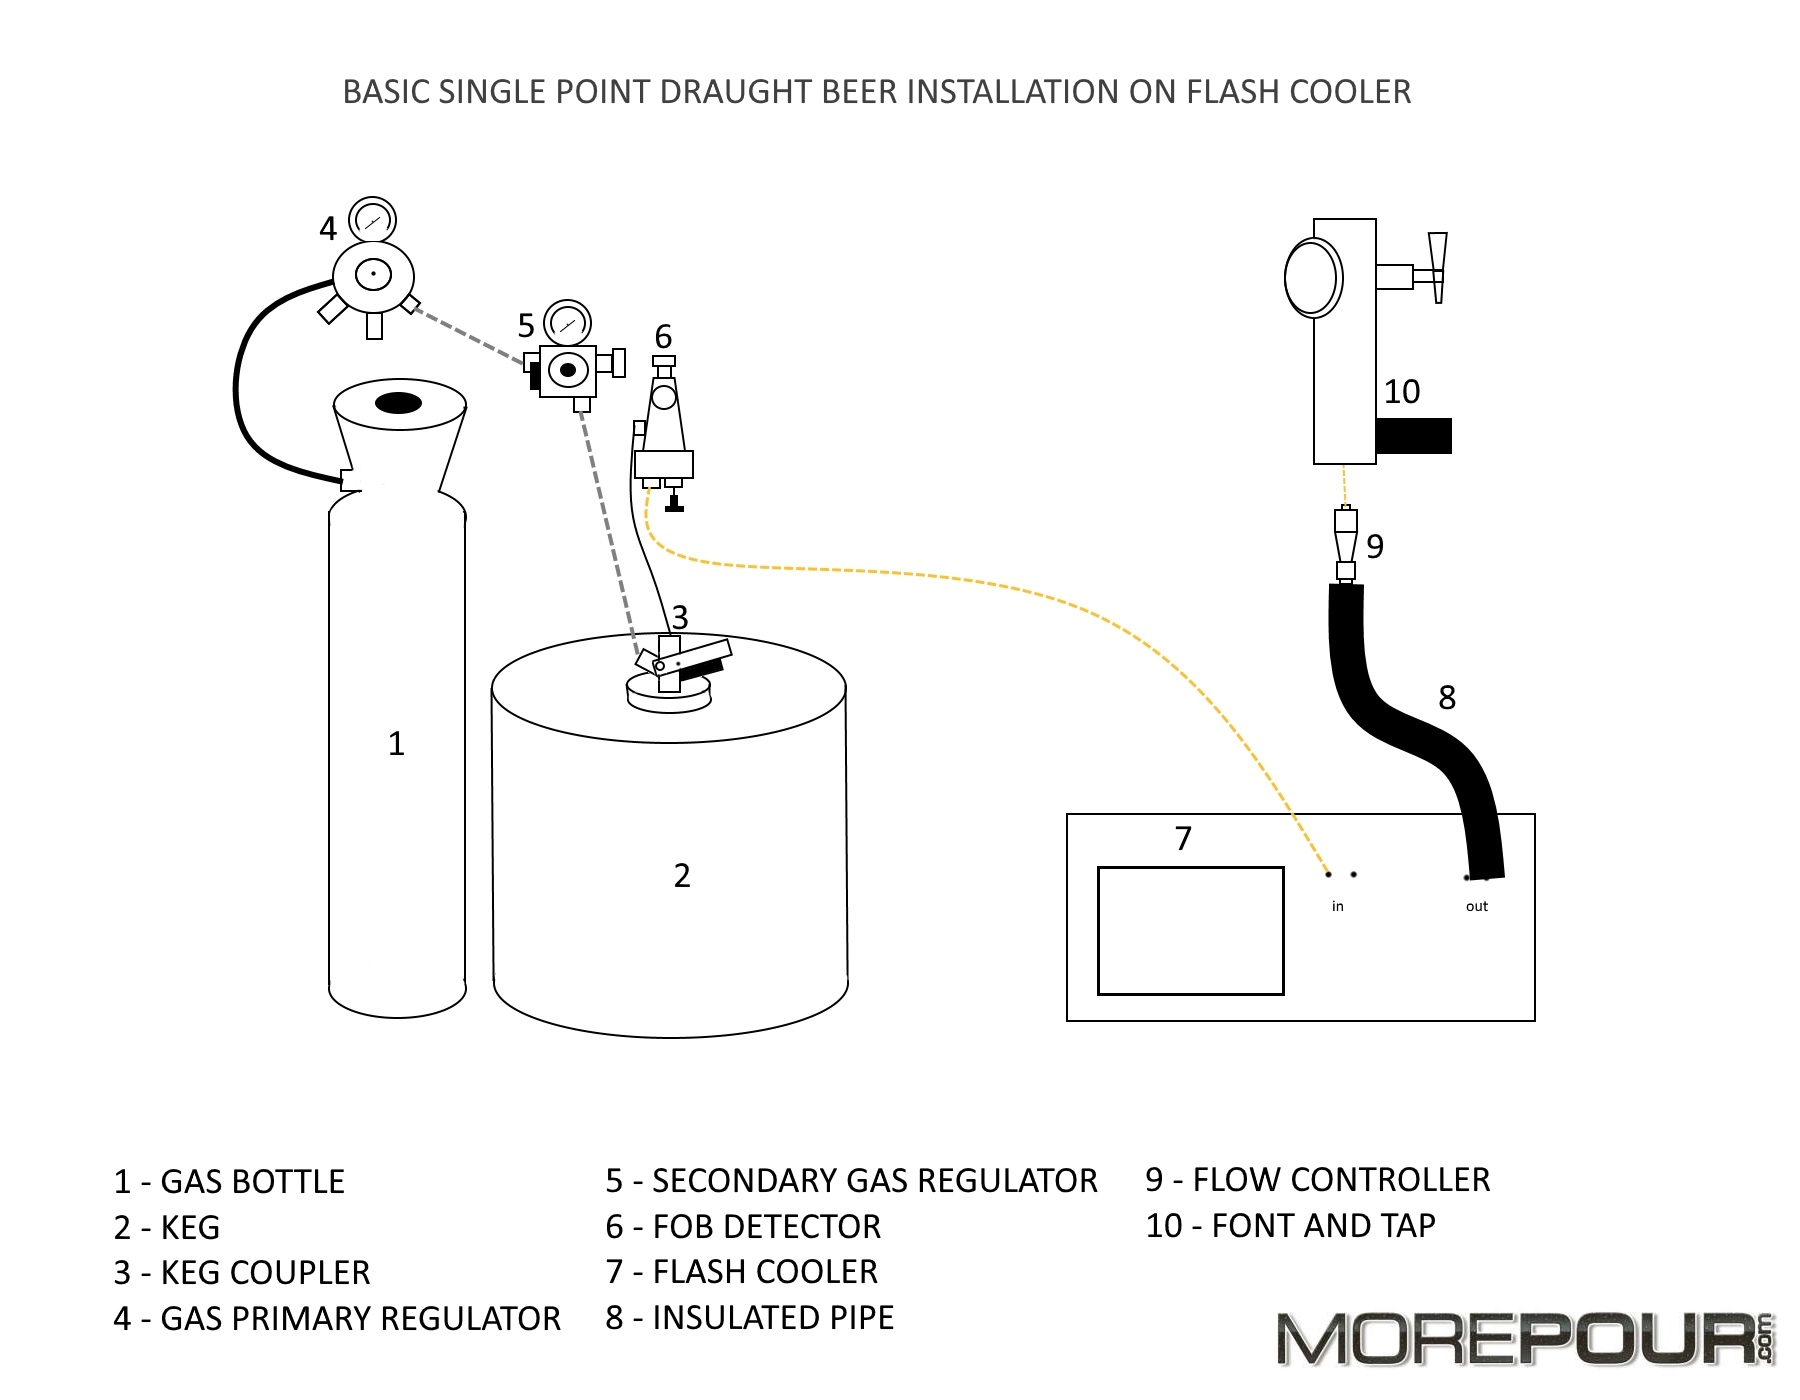 How to install a beer tap on flash cooler